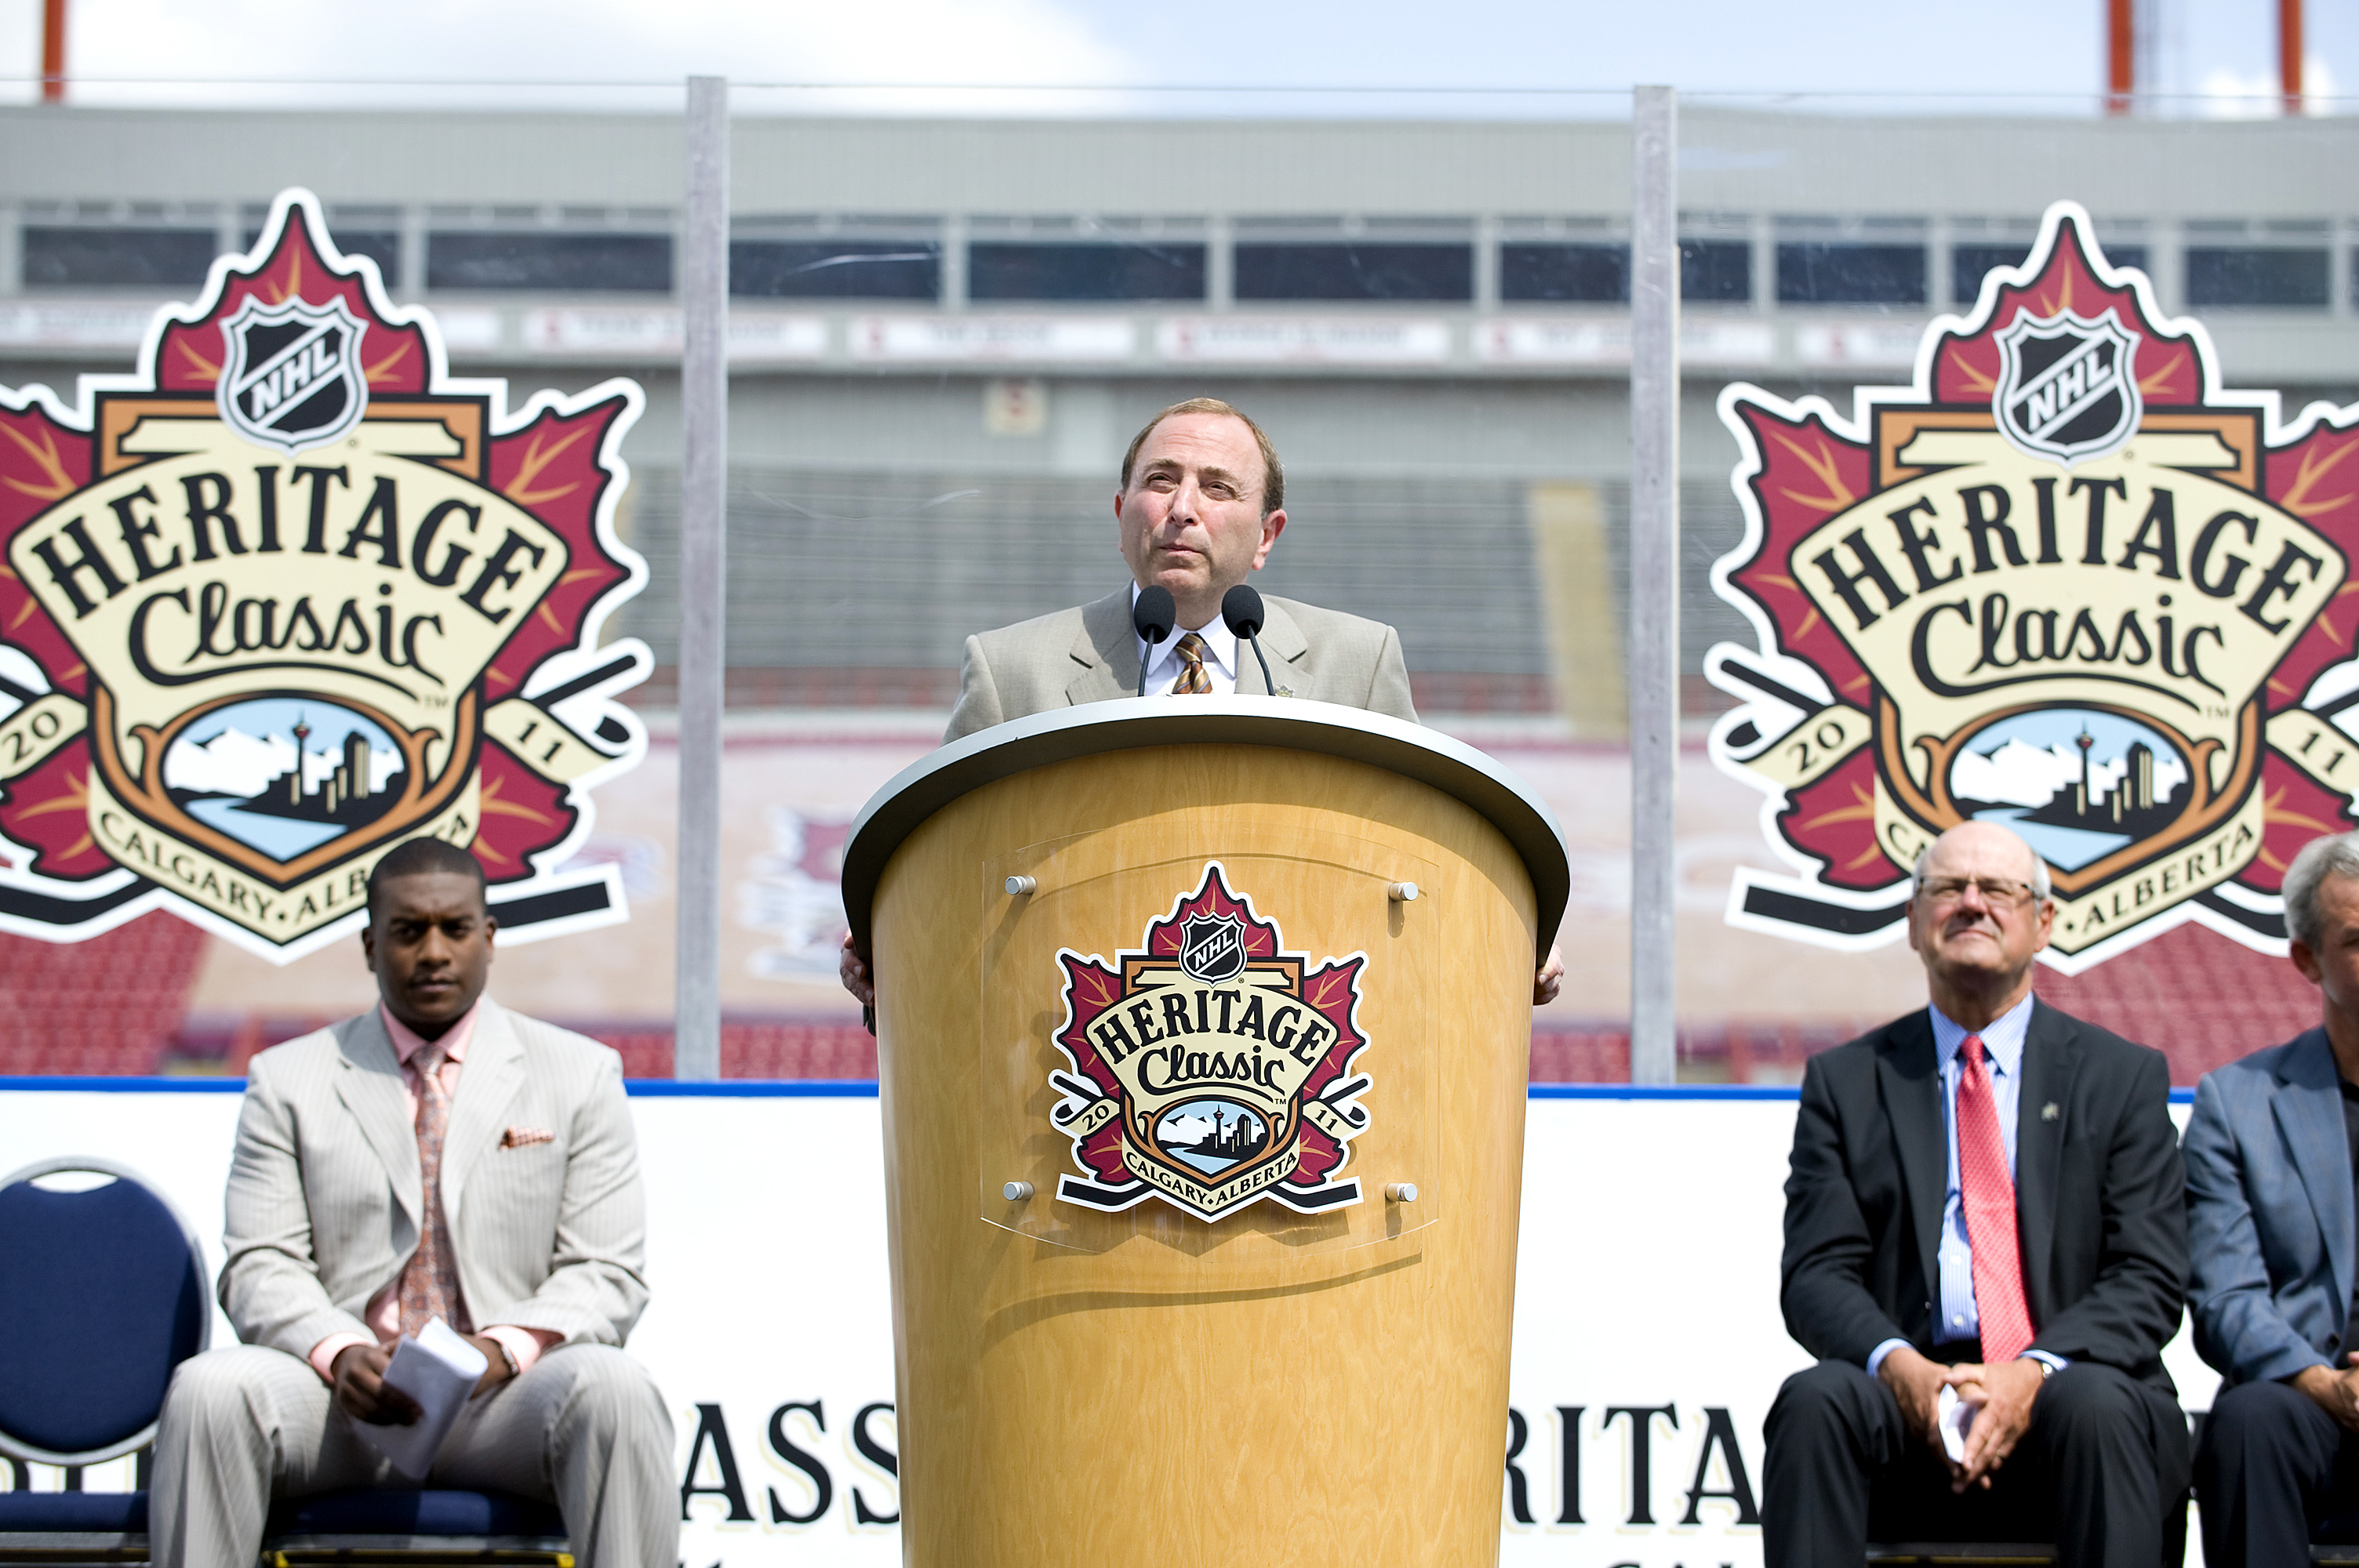 CALGARY, AB, CANADA - AUGUST 4:  NHL Commissioner Gary Bettman addresses the media at the NHL Heritage Classic Press Conference at McMahon Stadium on August 4, 2010 in Calgary, Alberta, Canada.  (Photo by Dylan Lynch/Getty Images)